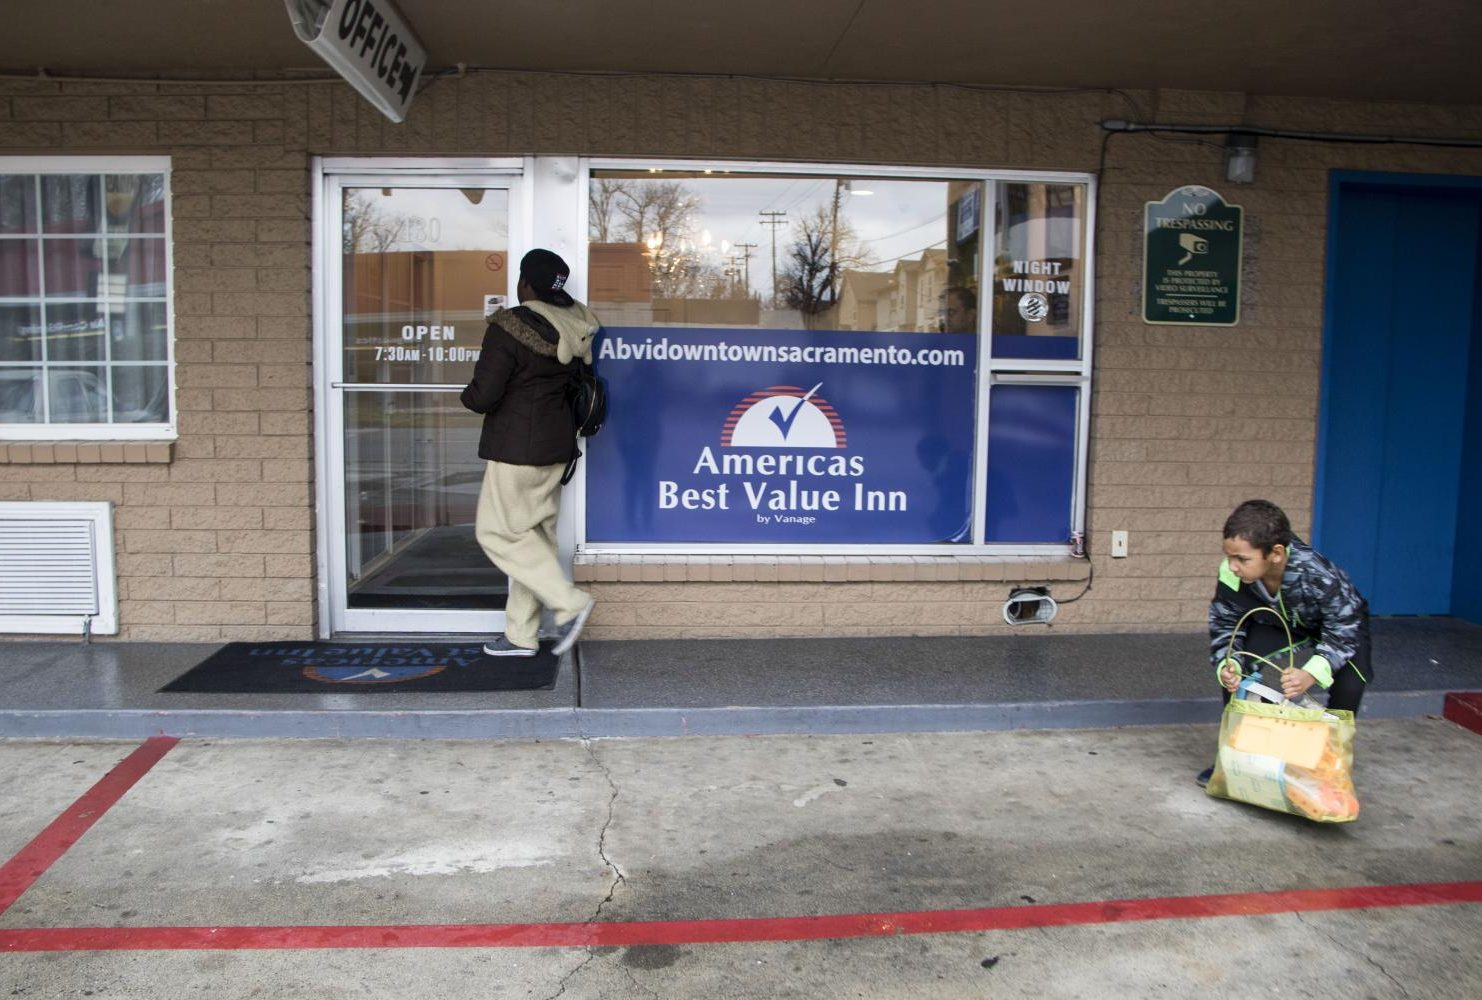 Due to the lack of funds, Duren-Hill and Gavin Hill check out of their motel room at the Americas Best Value Inn on Jan. 5, 2019. (Photo by Ashley Hayes-Stone)